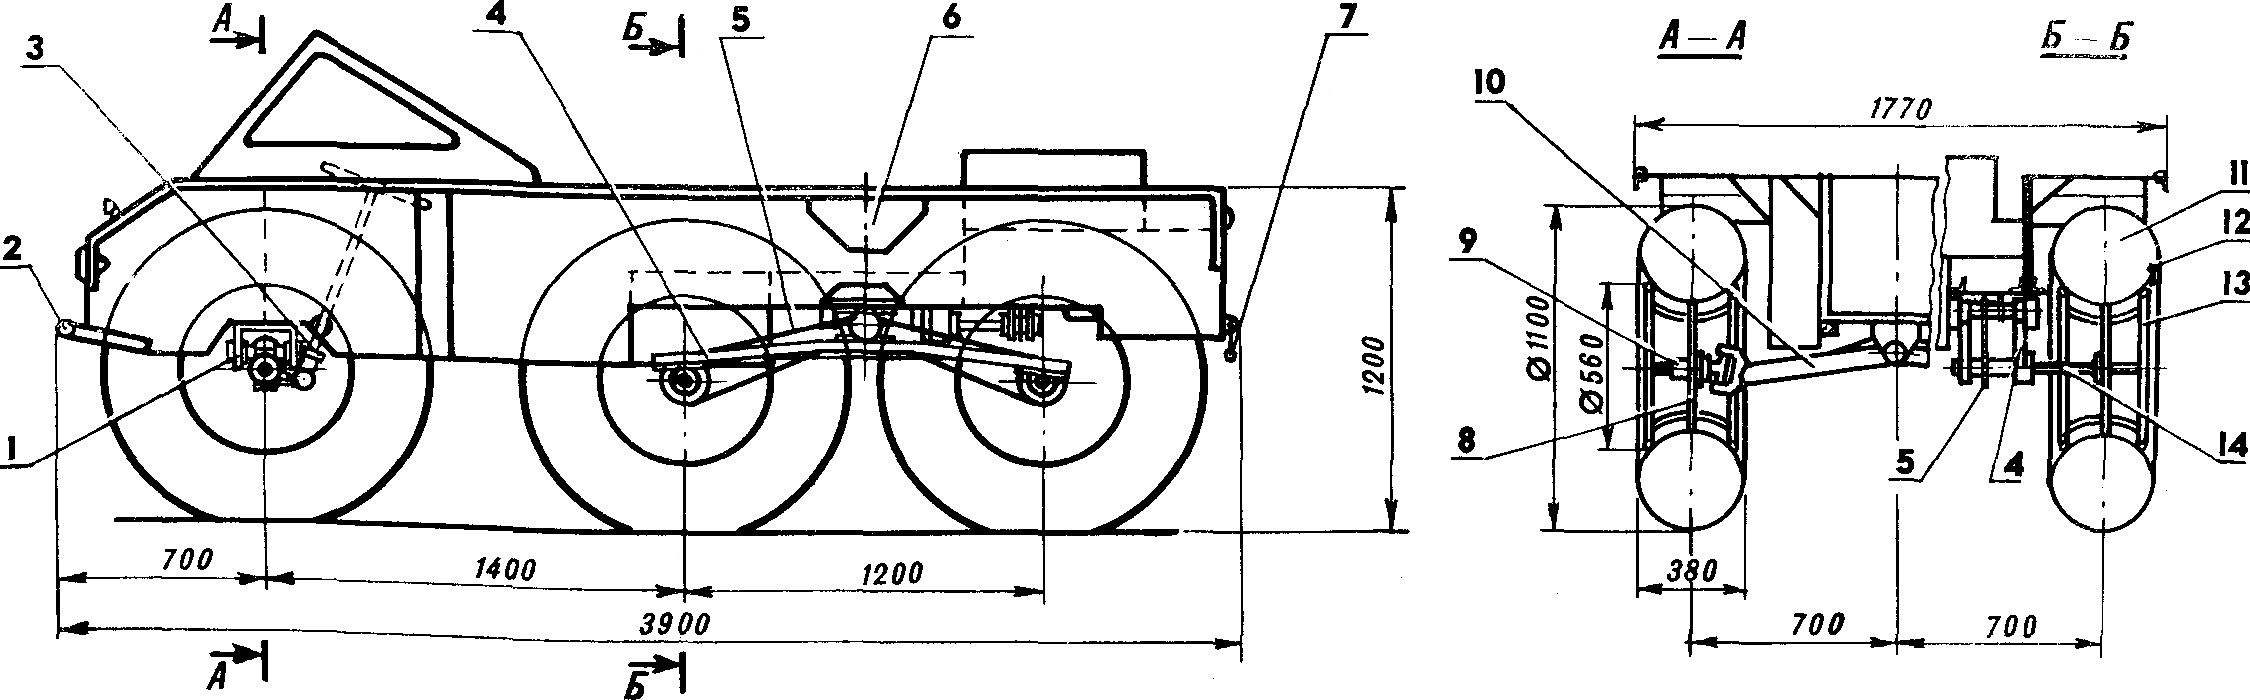 Fig. 1. Three-axle all-terrain vehicle on low pressure tires design G. Vidyakina.